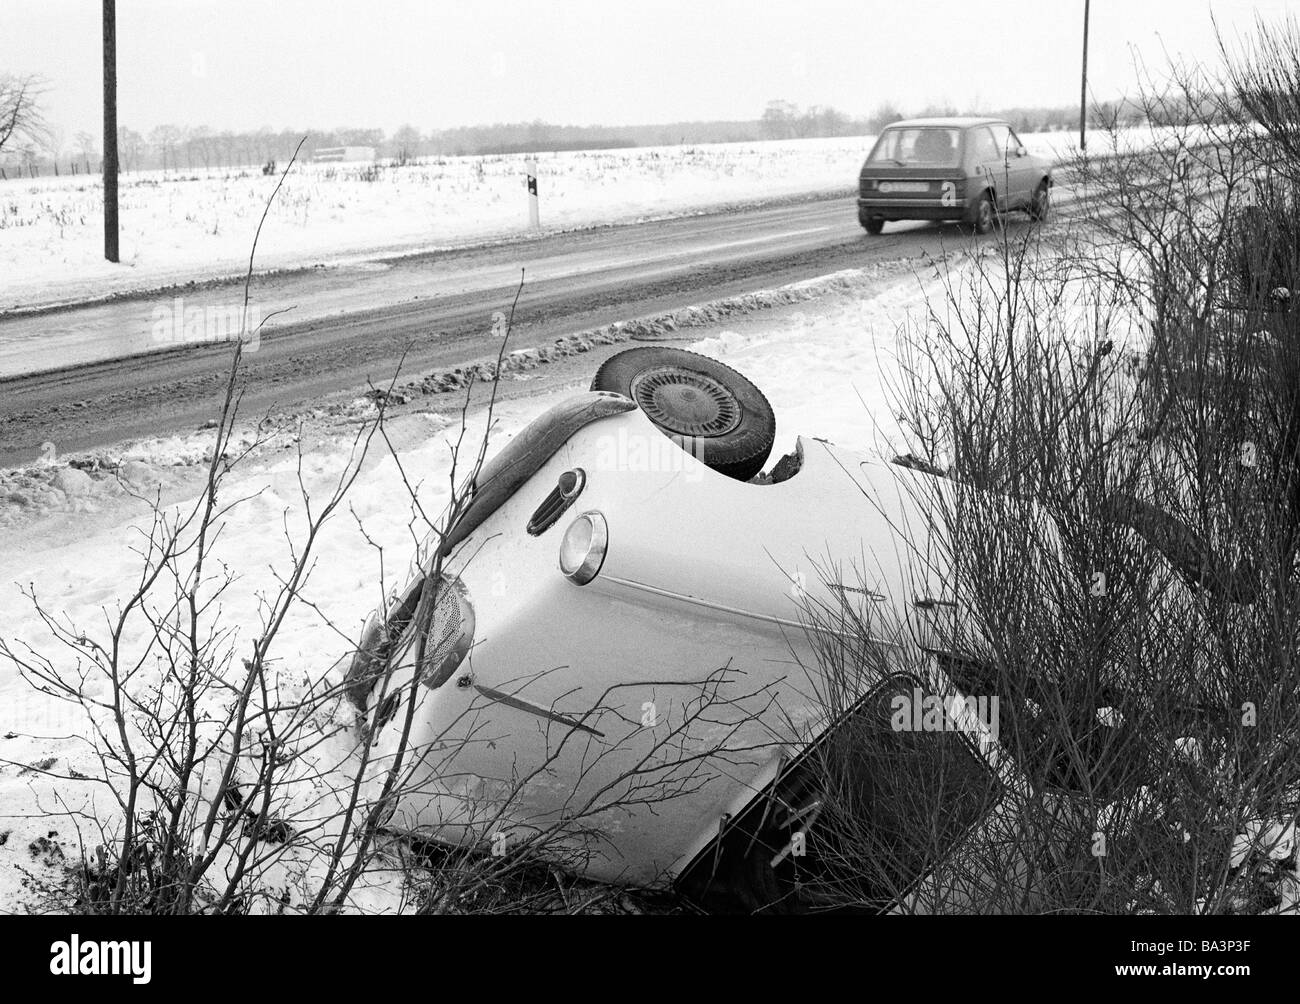 Seventies, black and white photo, traffic, car accident on a country road, passenger car lies in the roadside ditch, - Stock Image